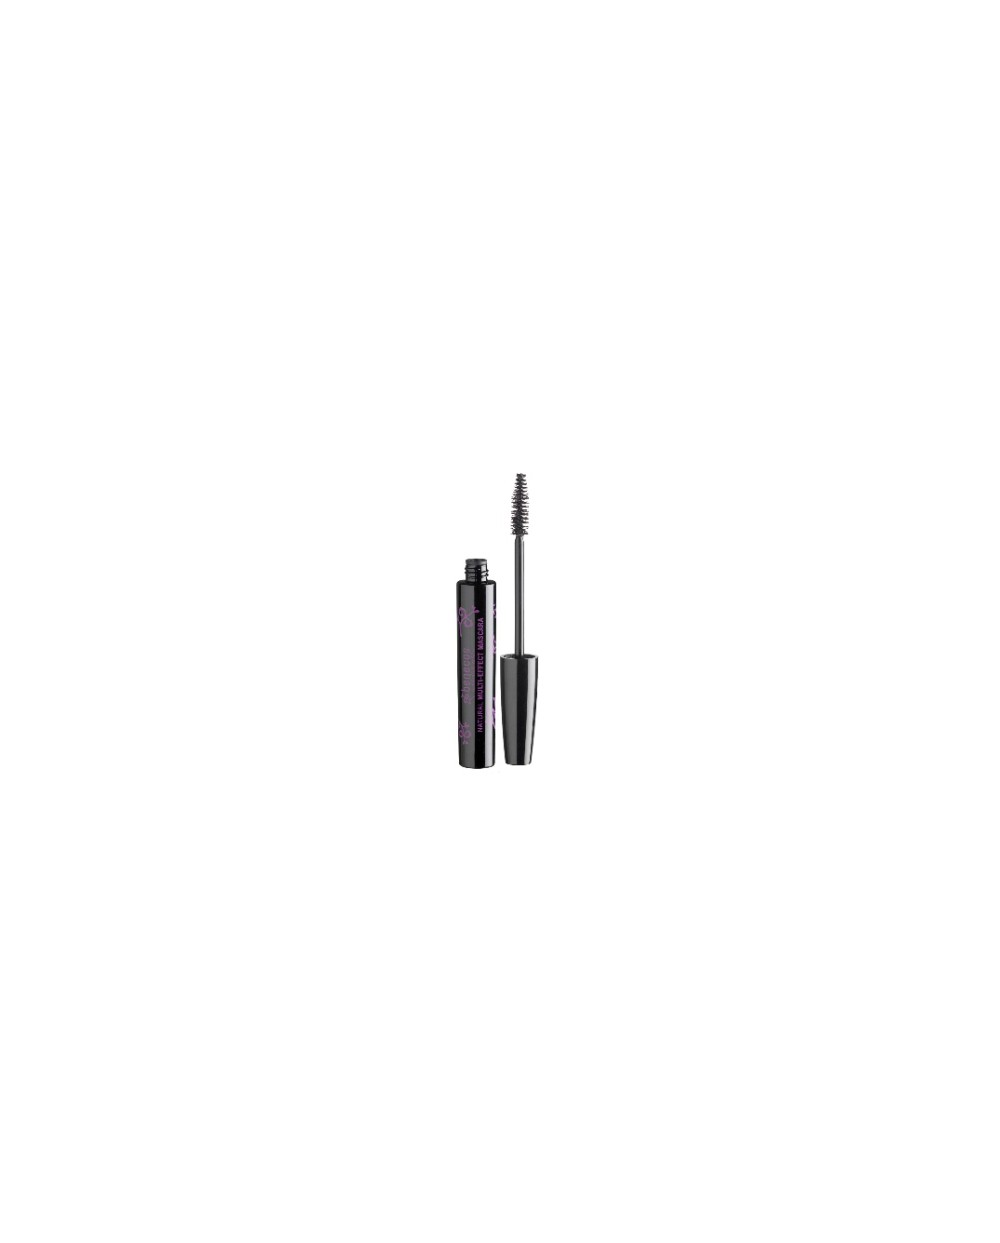 Benecos Mascara Multi effect - Just Black